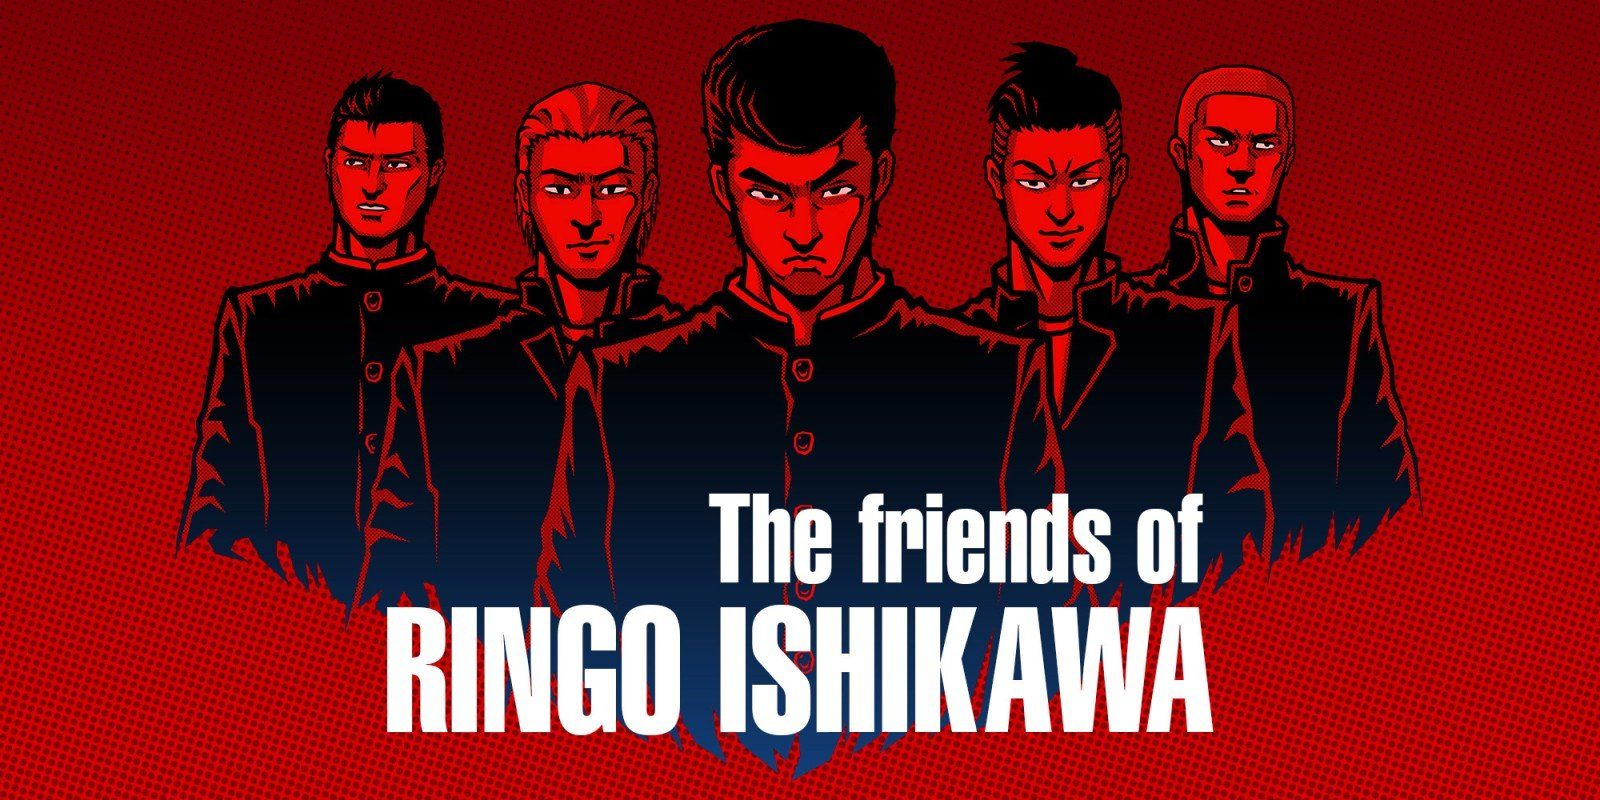 The friends of ringo - The Friends of RINGO ISHIKAWA : Un open-world à la sauce Kunio-Kun 191113041113297302